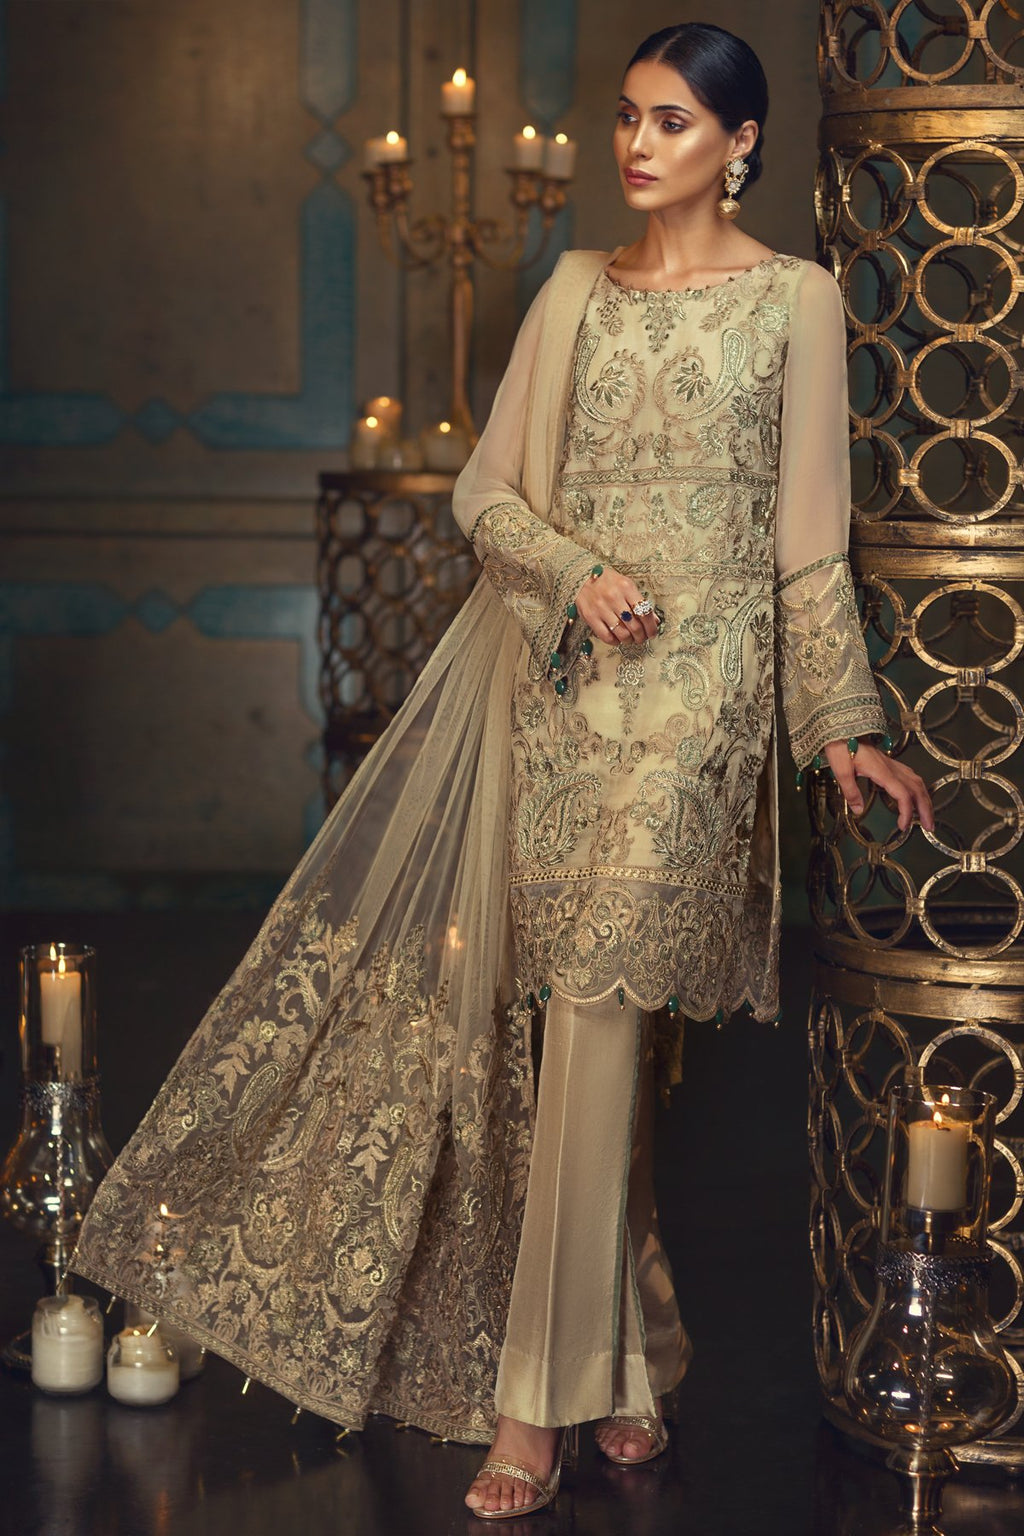 Jazmin Perle D'eau Chiffon 2018 suit Ivory Allure - Embroidered Kameez, Net Pallu Dupatta and Organza Trouser